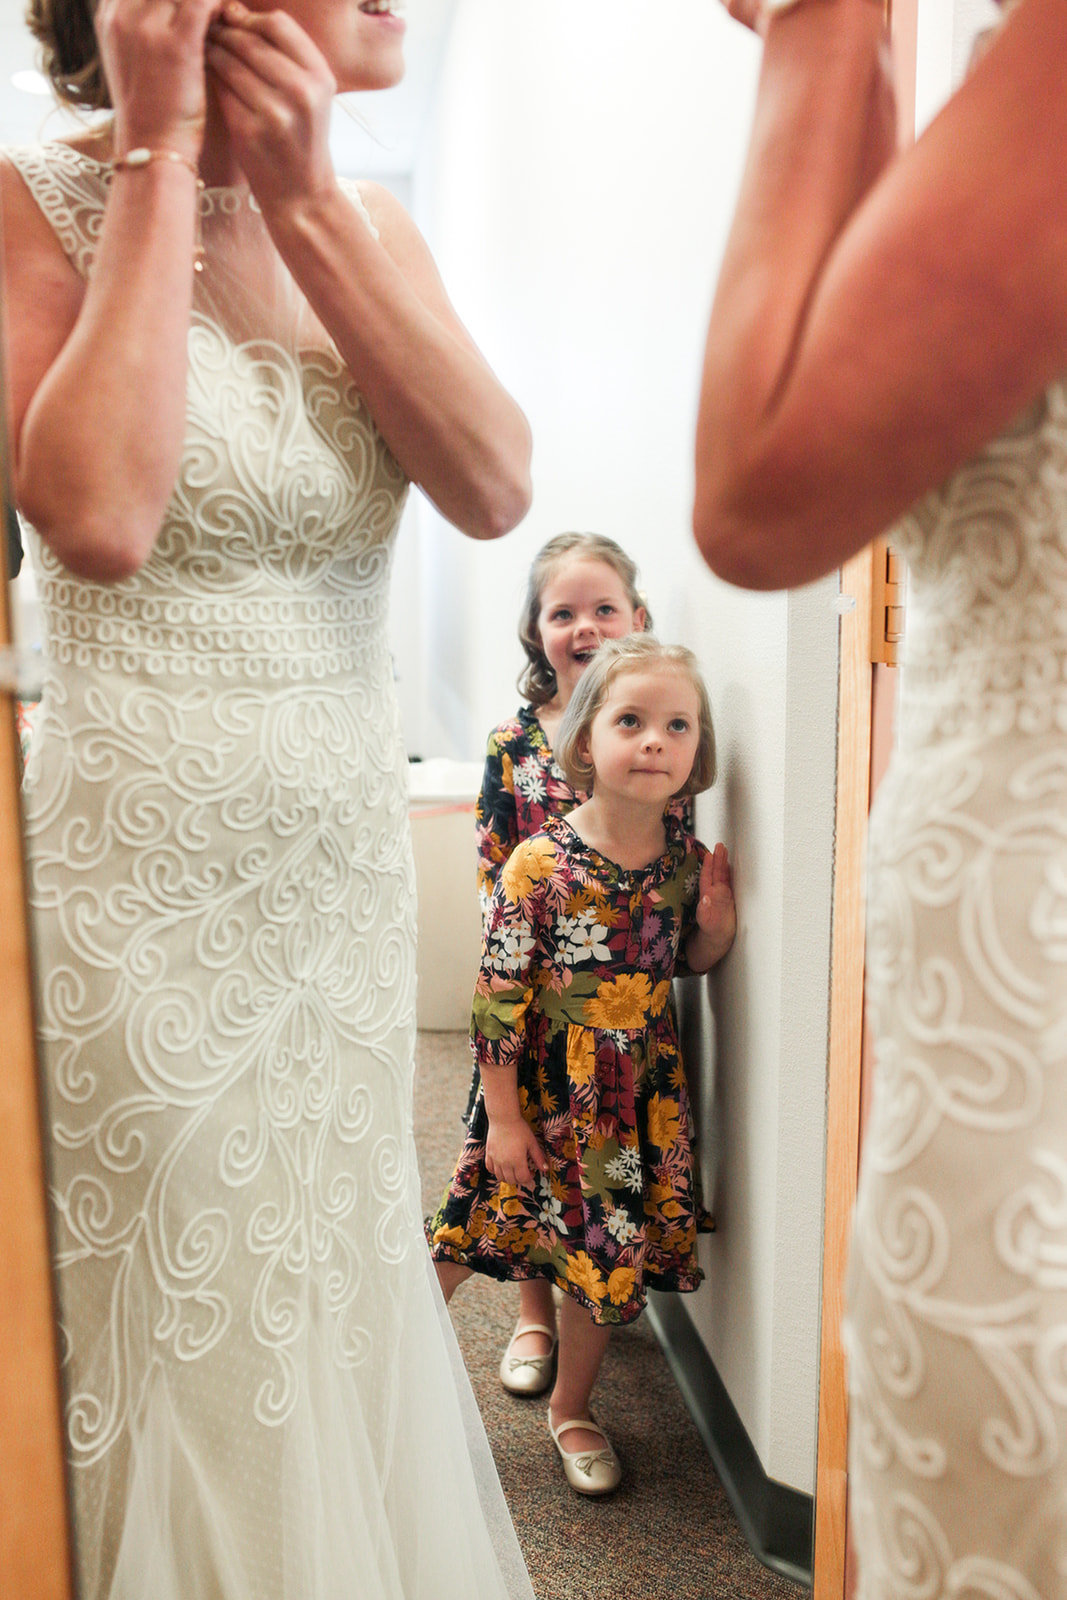 Albuquerque Wedding Photographer_Catholic Wedding_www.tylerbrooke.com_Kate Kauffman_003